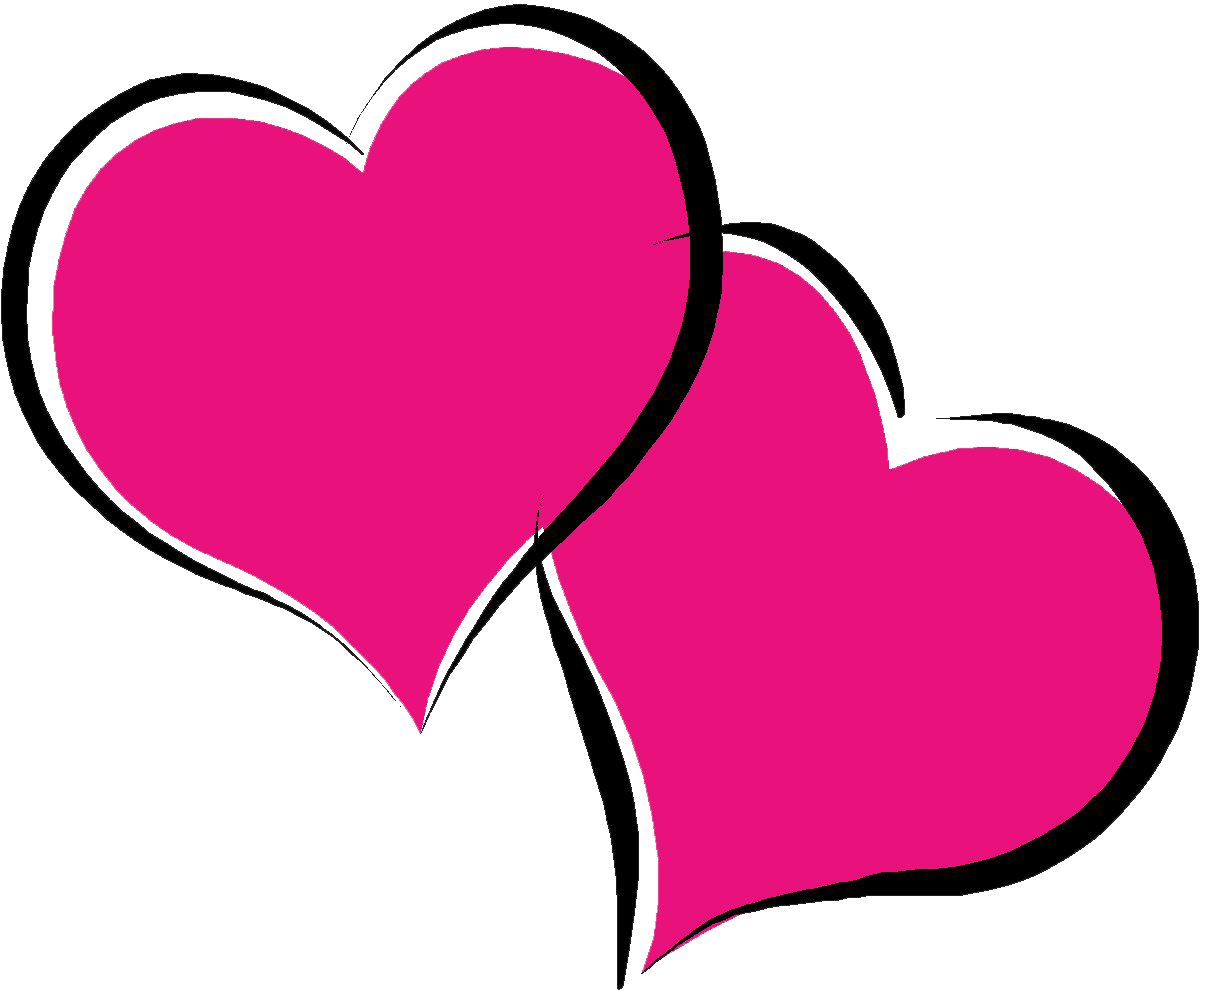 Pink heart png. Hot pic